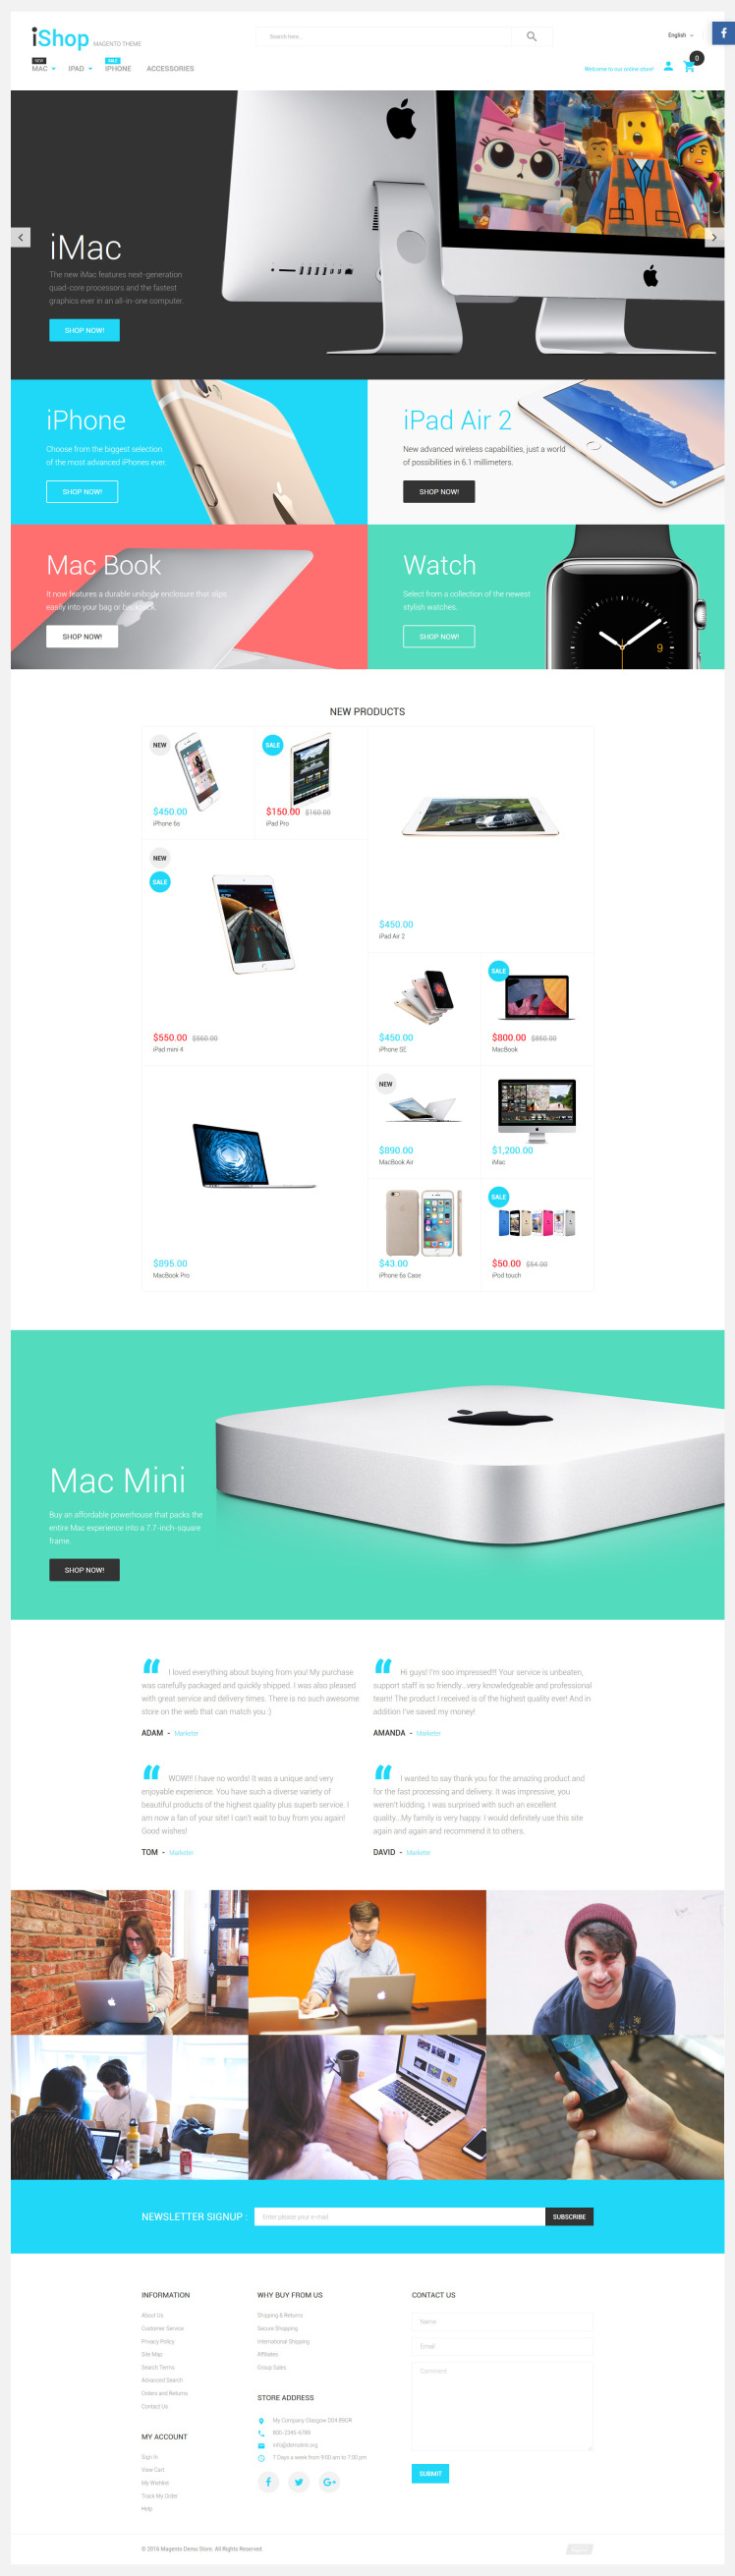 iShop Electronic Devices Magento Themes